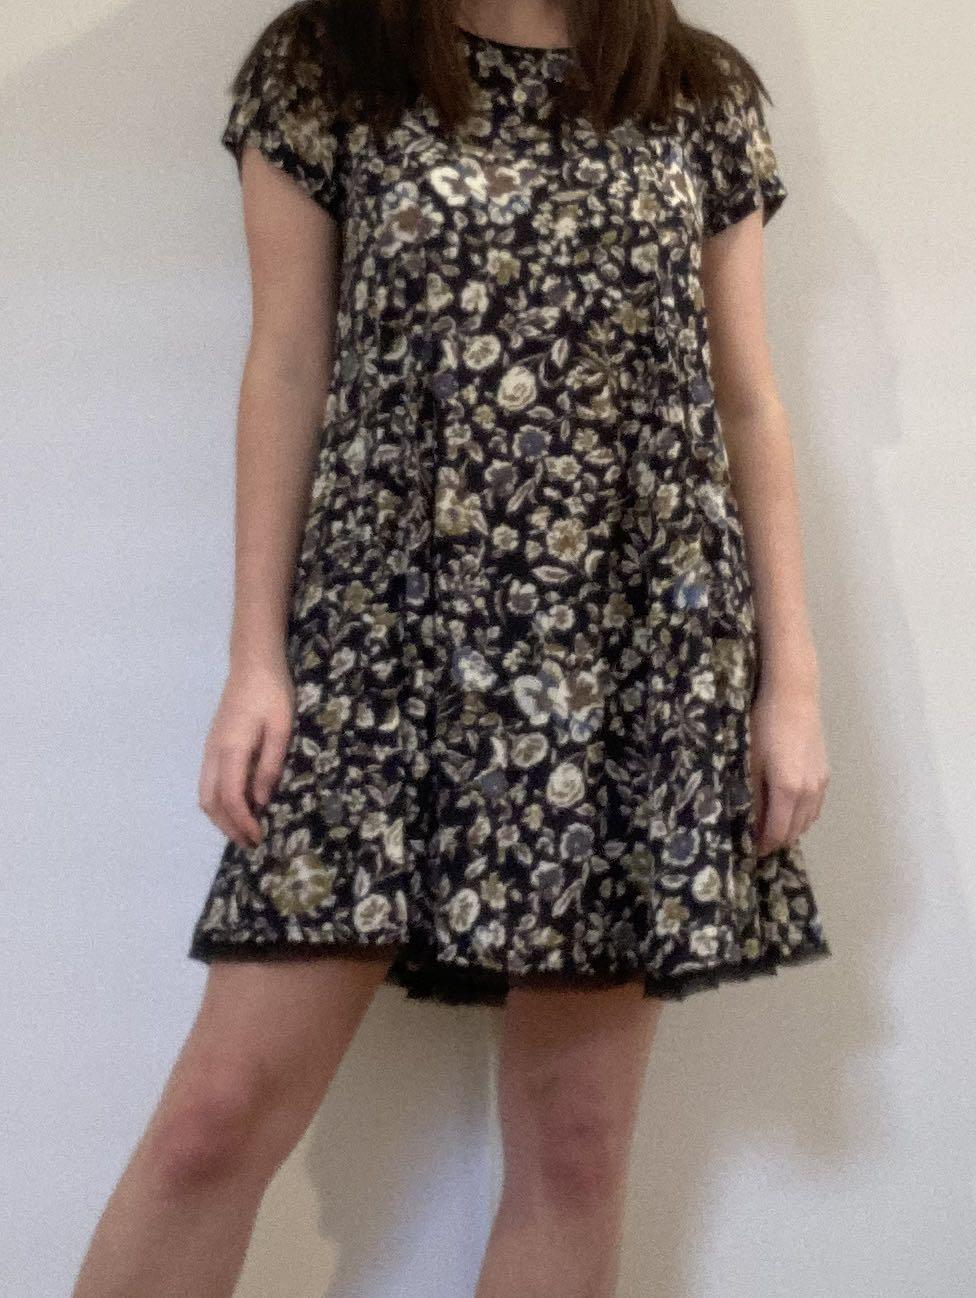 Floral dress - long lost